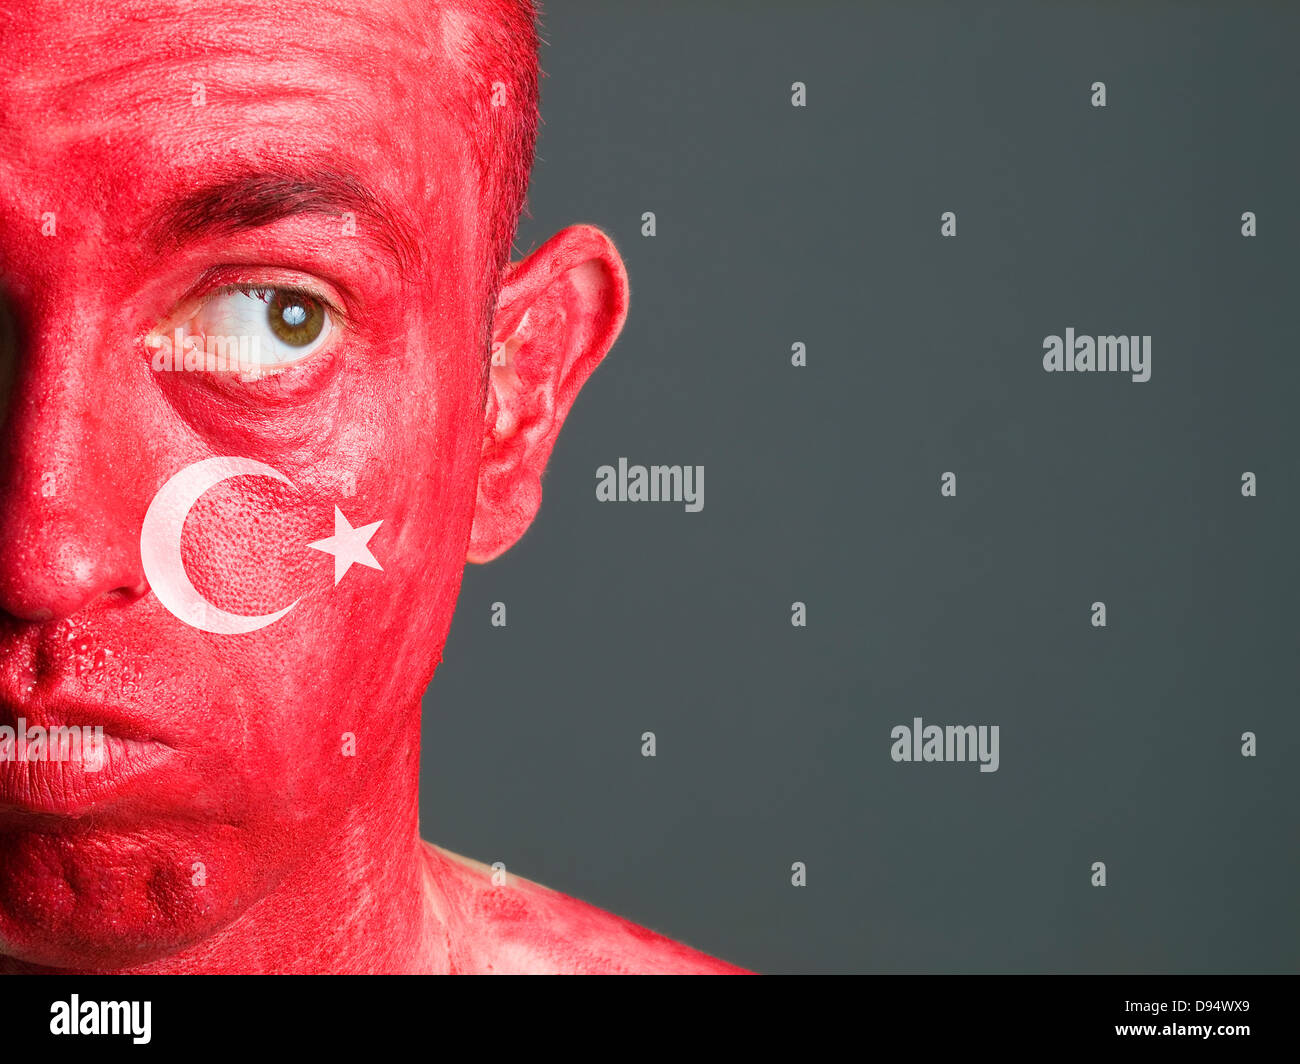 Face man makeup with turkish flag and isolated on dark background - Stock Image